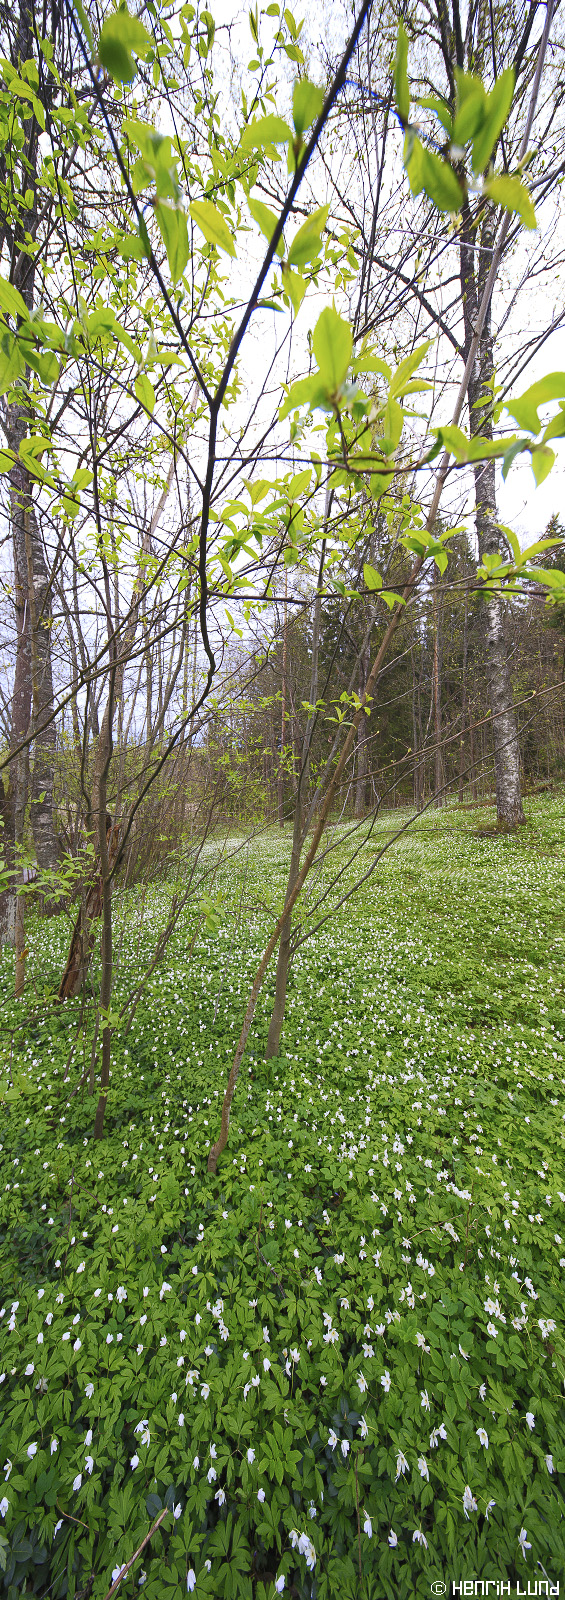 Wood anemones in a small meadow. Immersby, Sibbo, Finland, May 2015.